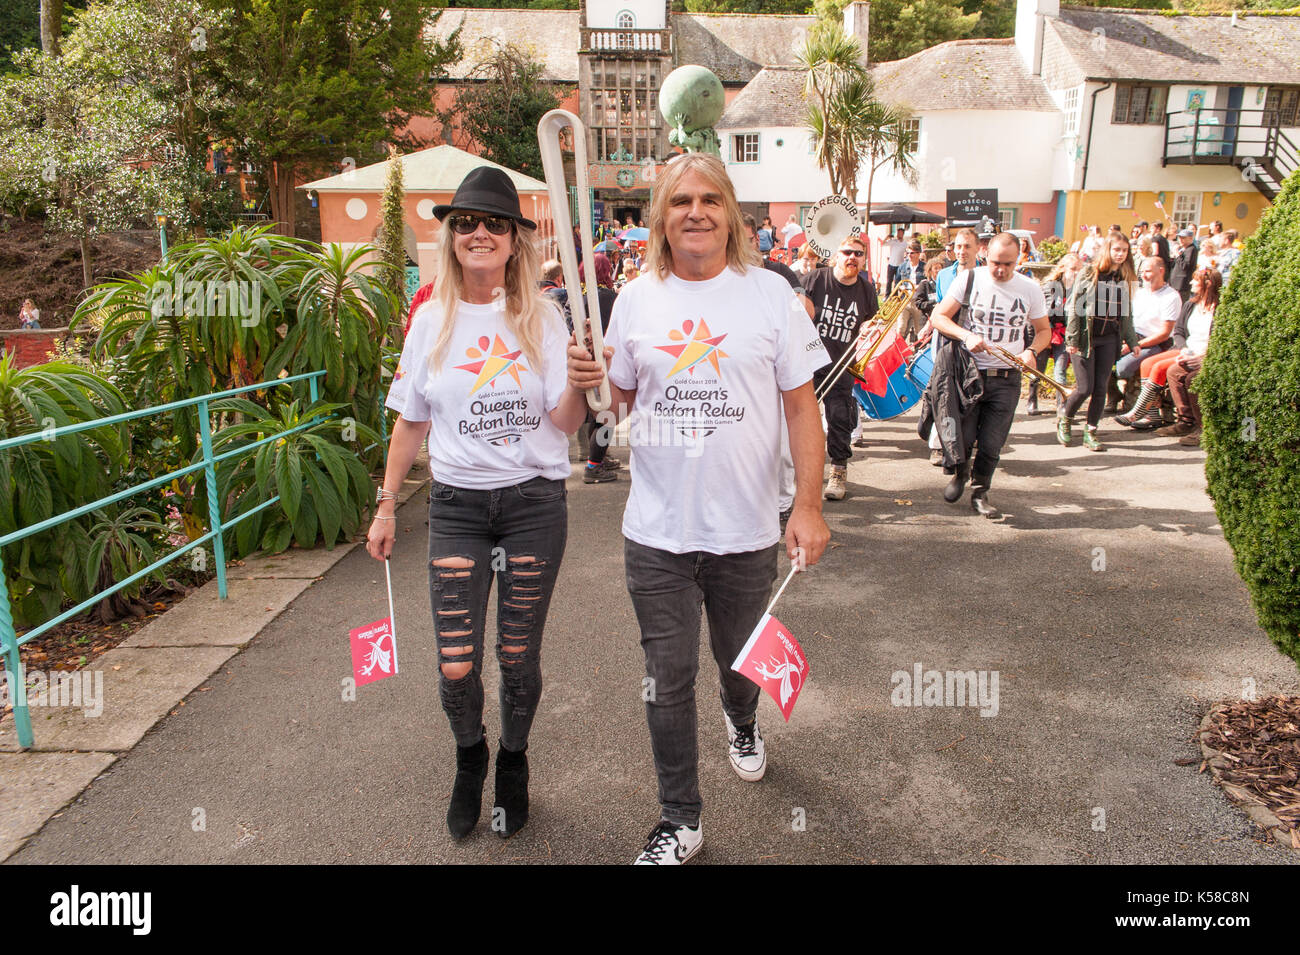 Portmeirion, Wales, UK. 8th September, 2017. Mike Peters of The Alarm leads the Commonwealth Games Baton parade Stock Photo